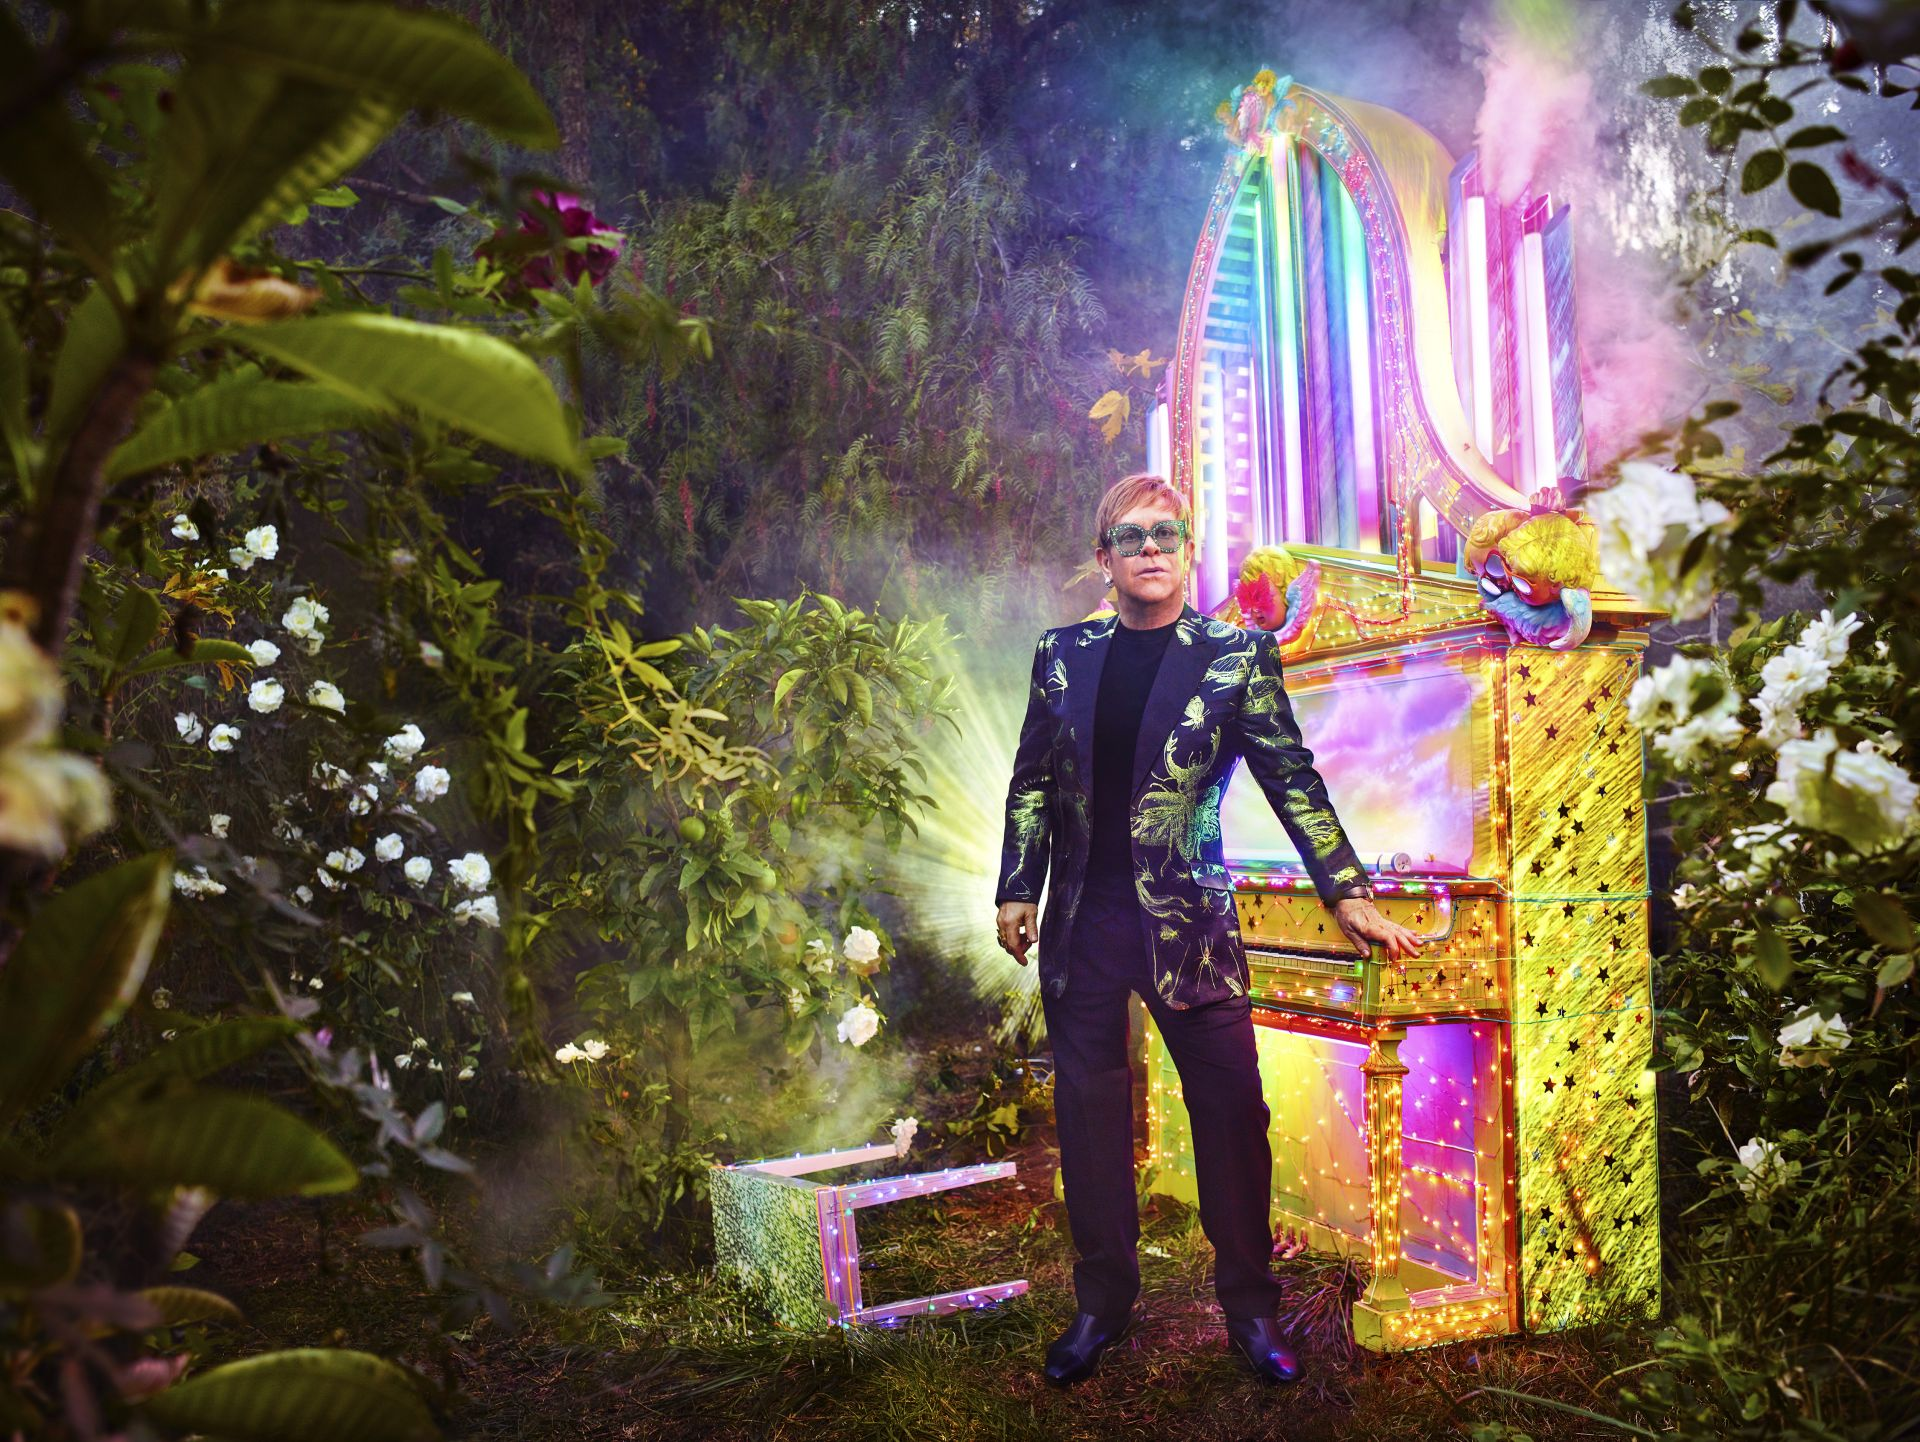 Tickets for Elton John's Allentown show go on sale